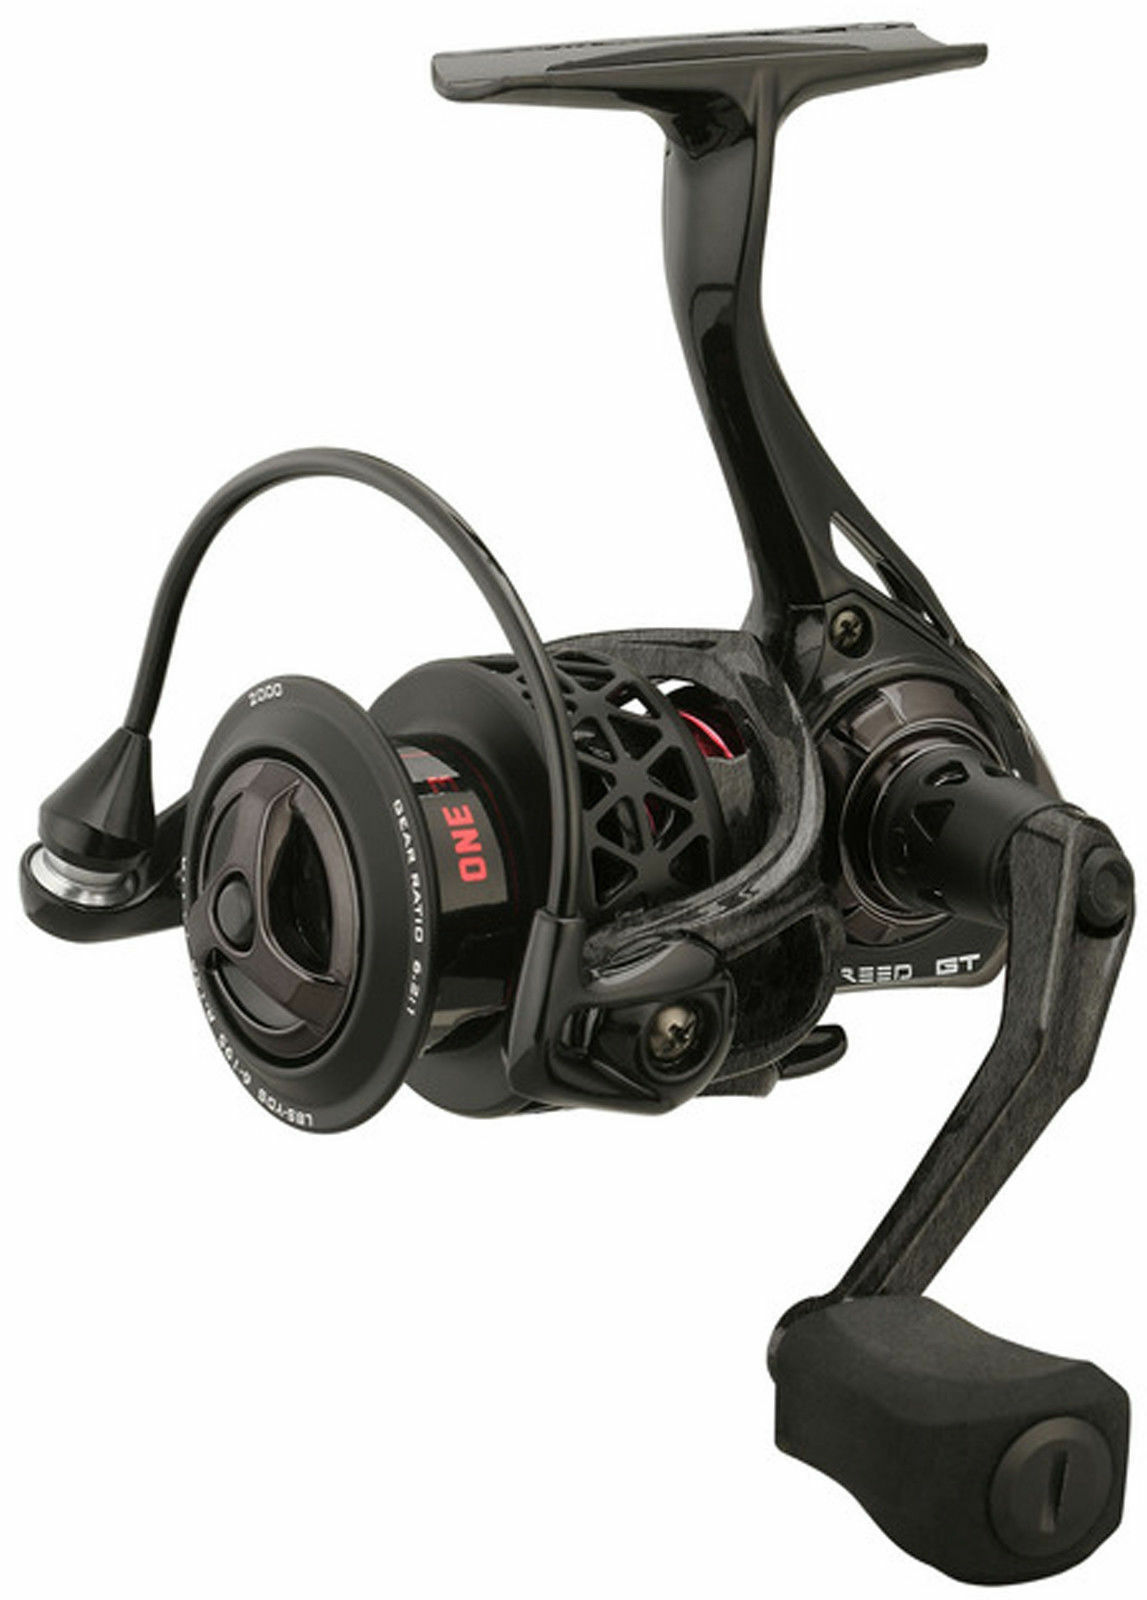 13 Fishing One 3 Creed GT 6.2 1 Spinning Fishing Reel - CRGT2000